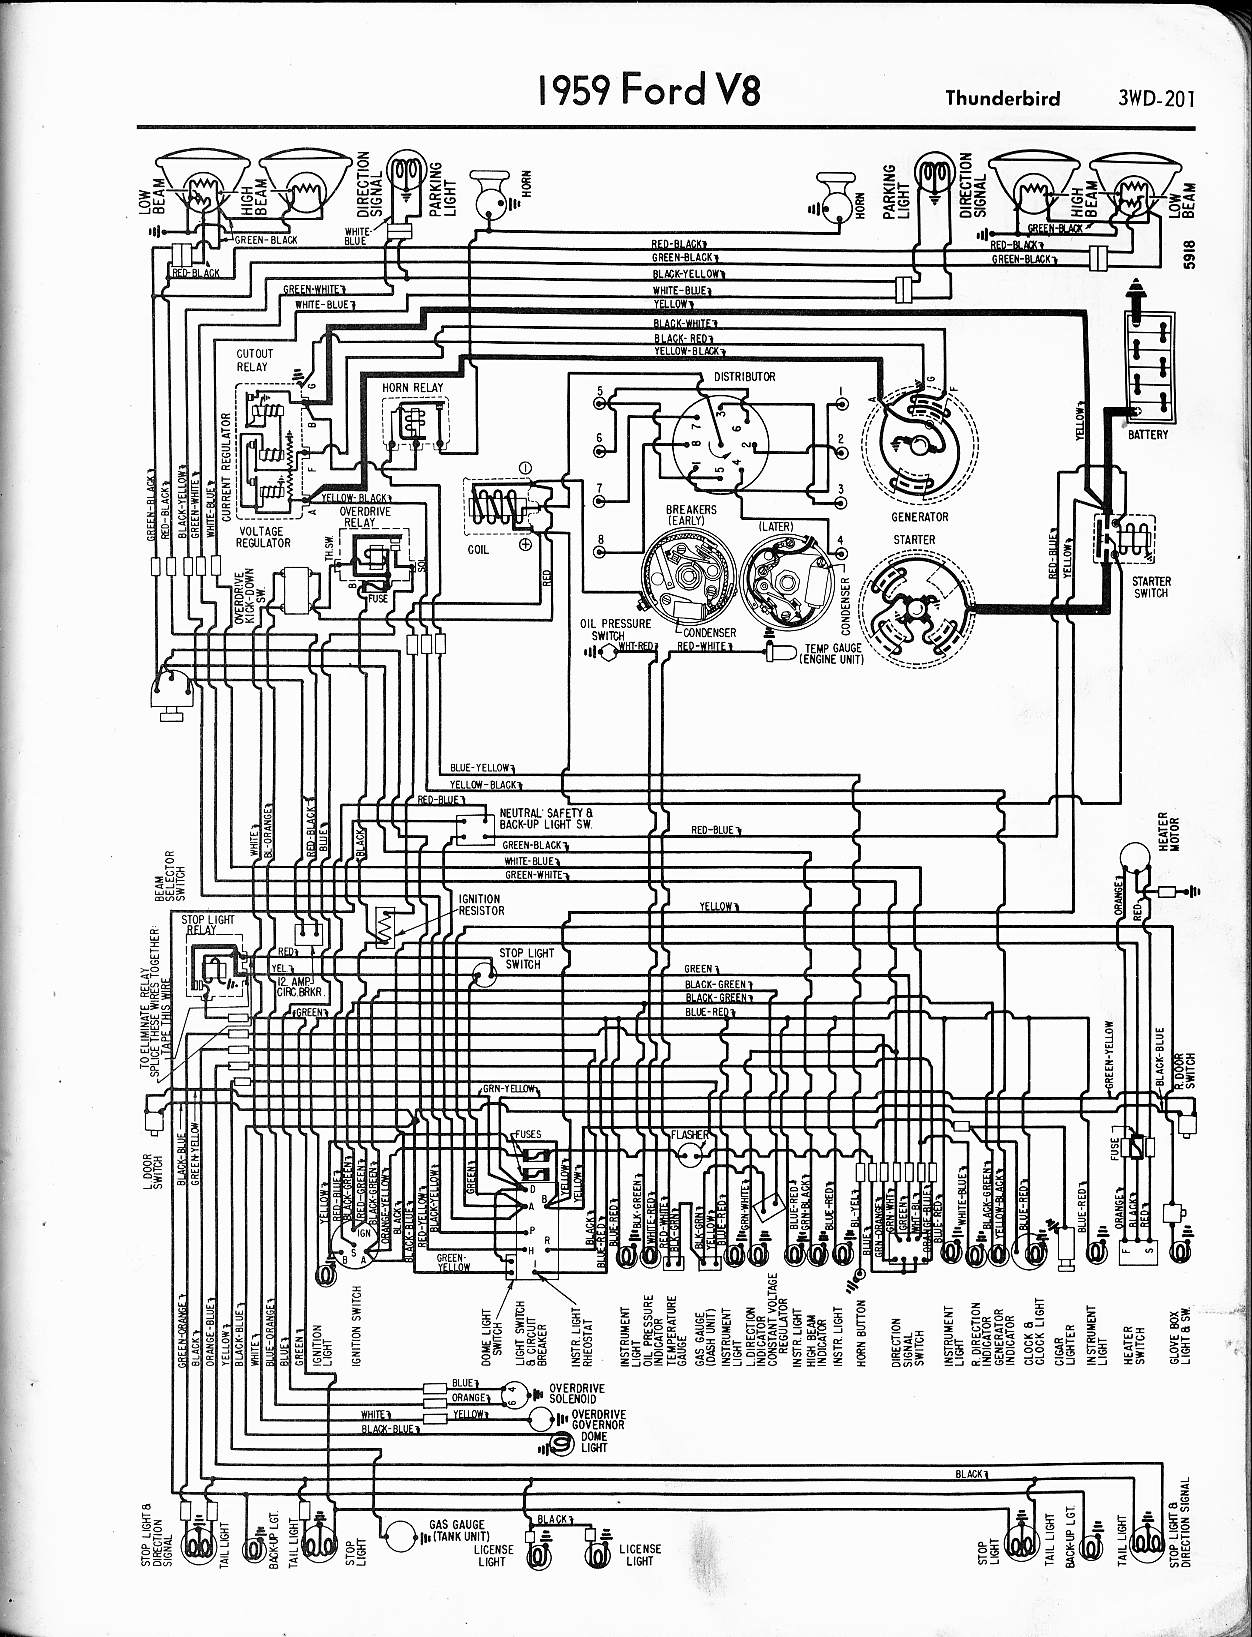 57 65 ford wiring diagramsBasic Wiring Diagram For Ford V8 #2